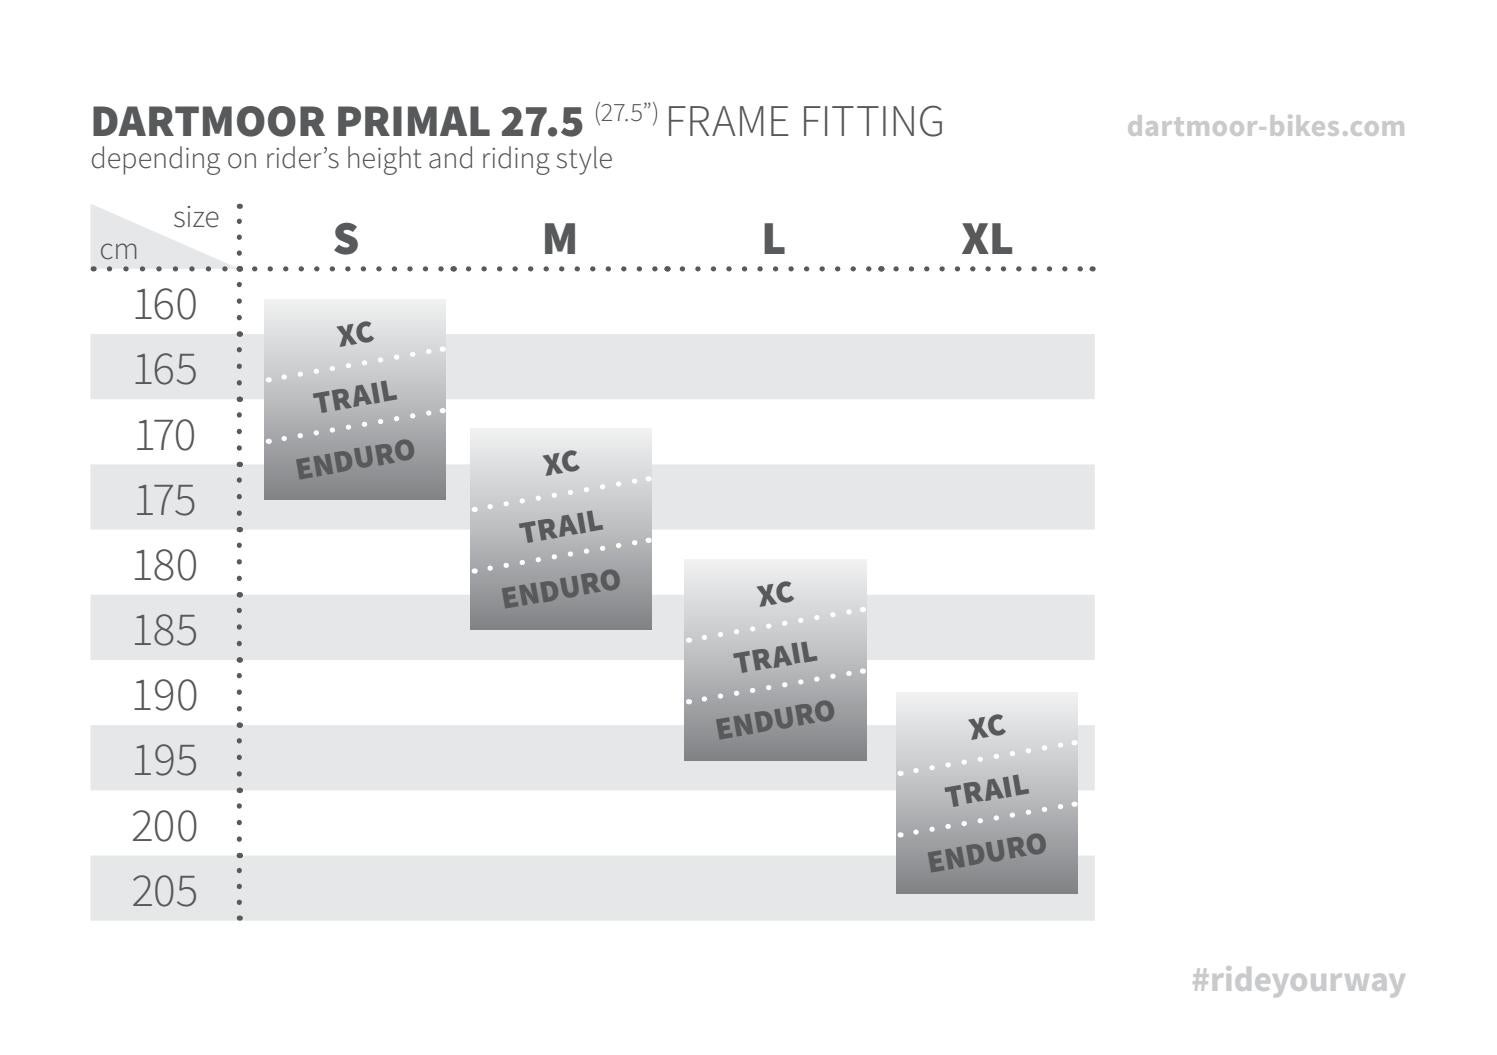 Dartmoor Primal 27 5 Frames And Bikes Size Fitting Chart 2017 By